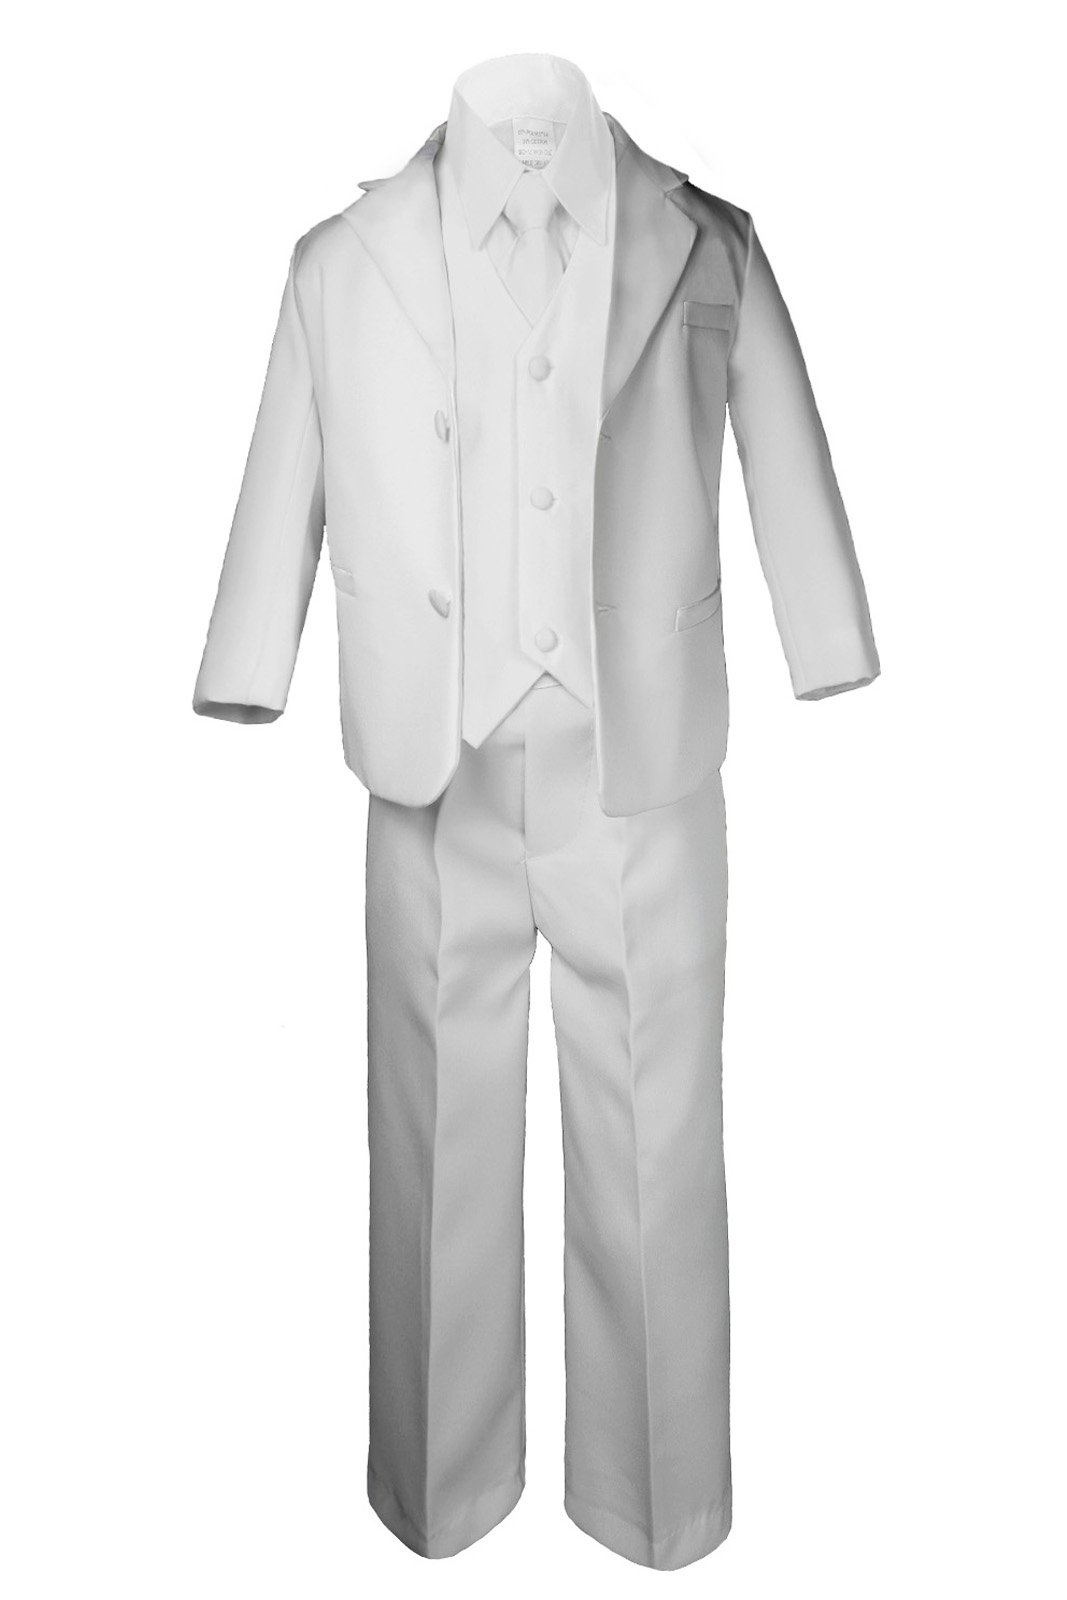 5pc Baby Boy Teen WHITE SUIT w/ Cancer Awareness Ribbon Adhesive LOVE HOPE Patch (2T, 5pc White suit set Only) by Unotux (Image #2)